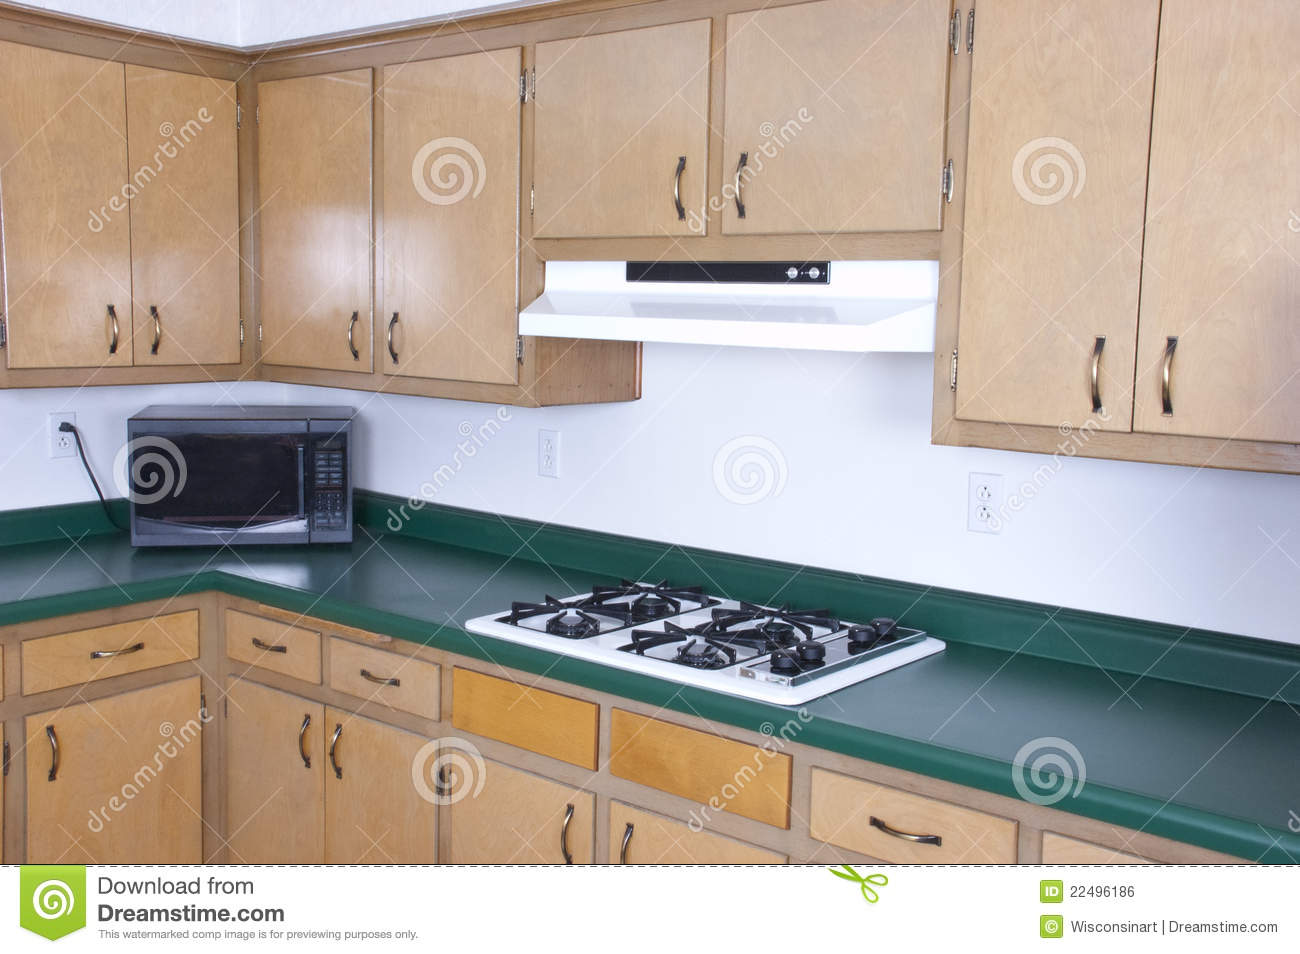 Remodeling Old Kitchen Similiar Remodeling Old Kitchen Cabinets Keywords